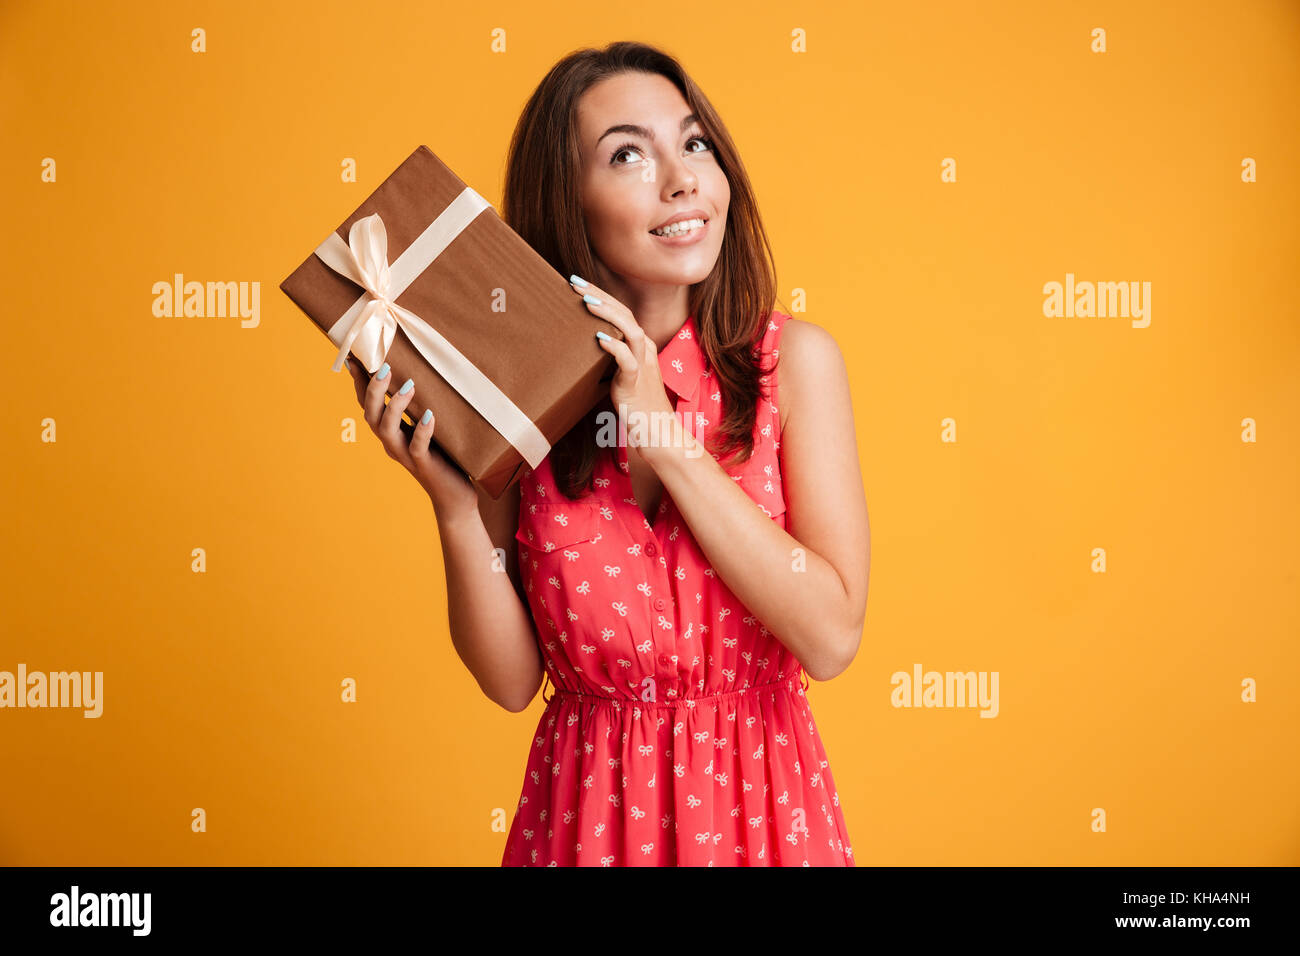 Intrigued runette woman in dress holding gift and looking up over yellow background - Stock Image